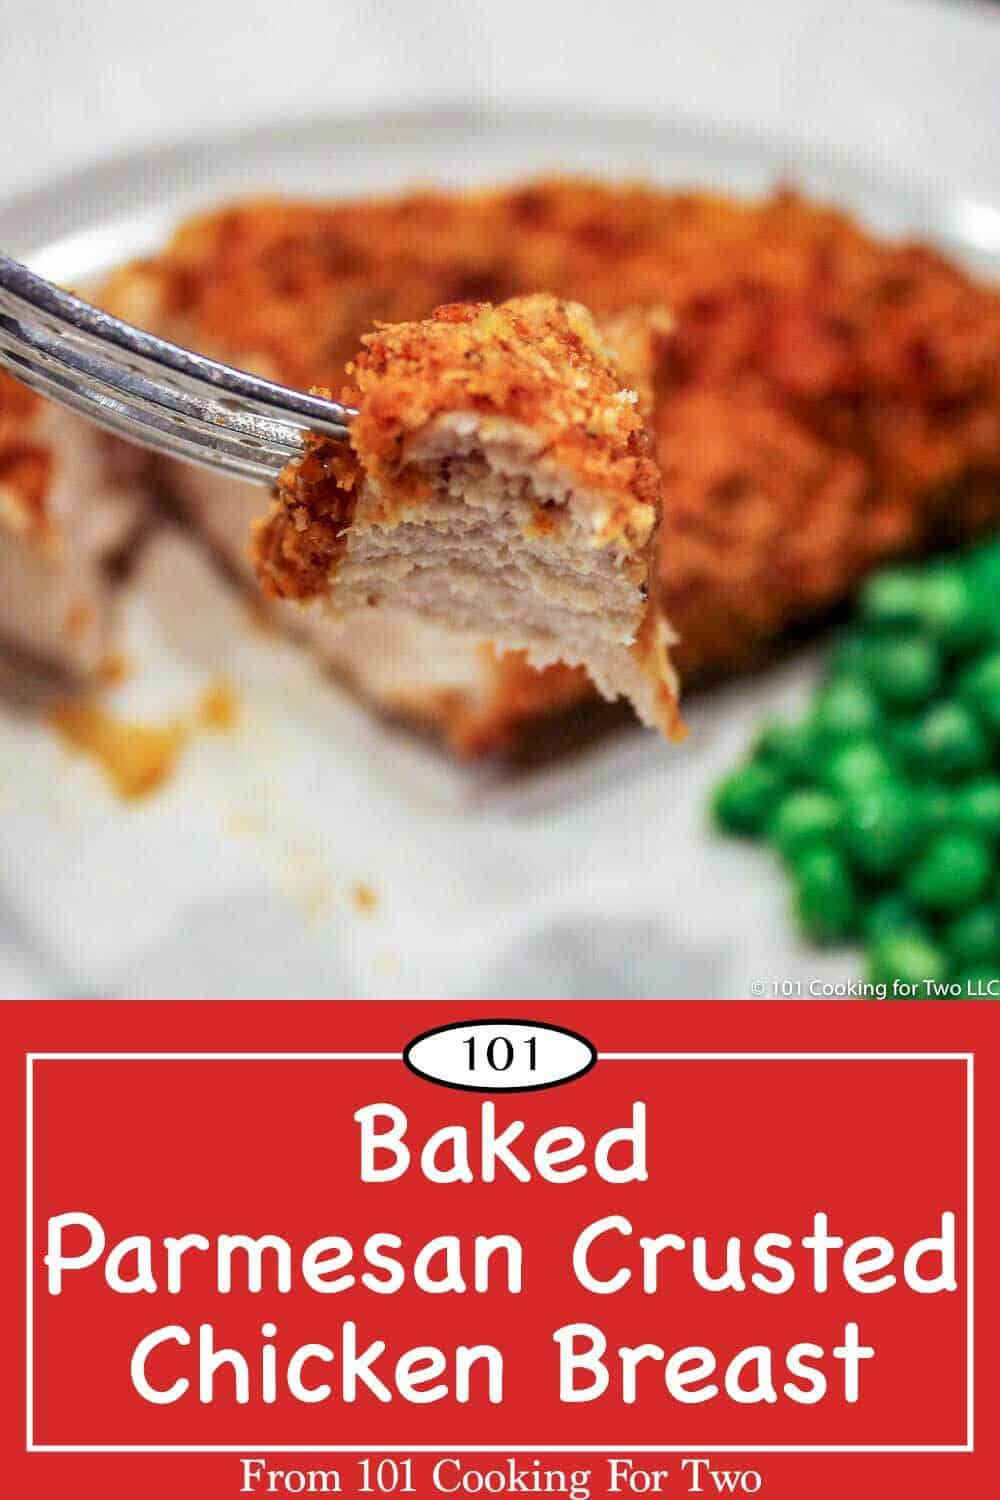 One of the best chicken breast recipes you will ever make. Just follow the easy step by step photo instructions. You can never have too many great chicken recipes. #ParmesanCrustedChickenBreasts #ParmesanChicken #SkinlessBonelessChickenBreasts